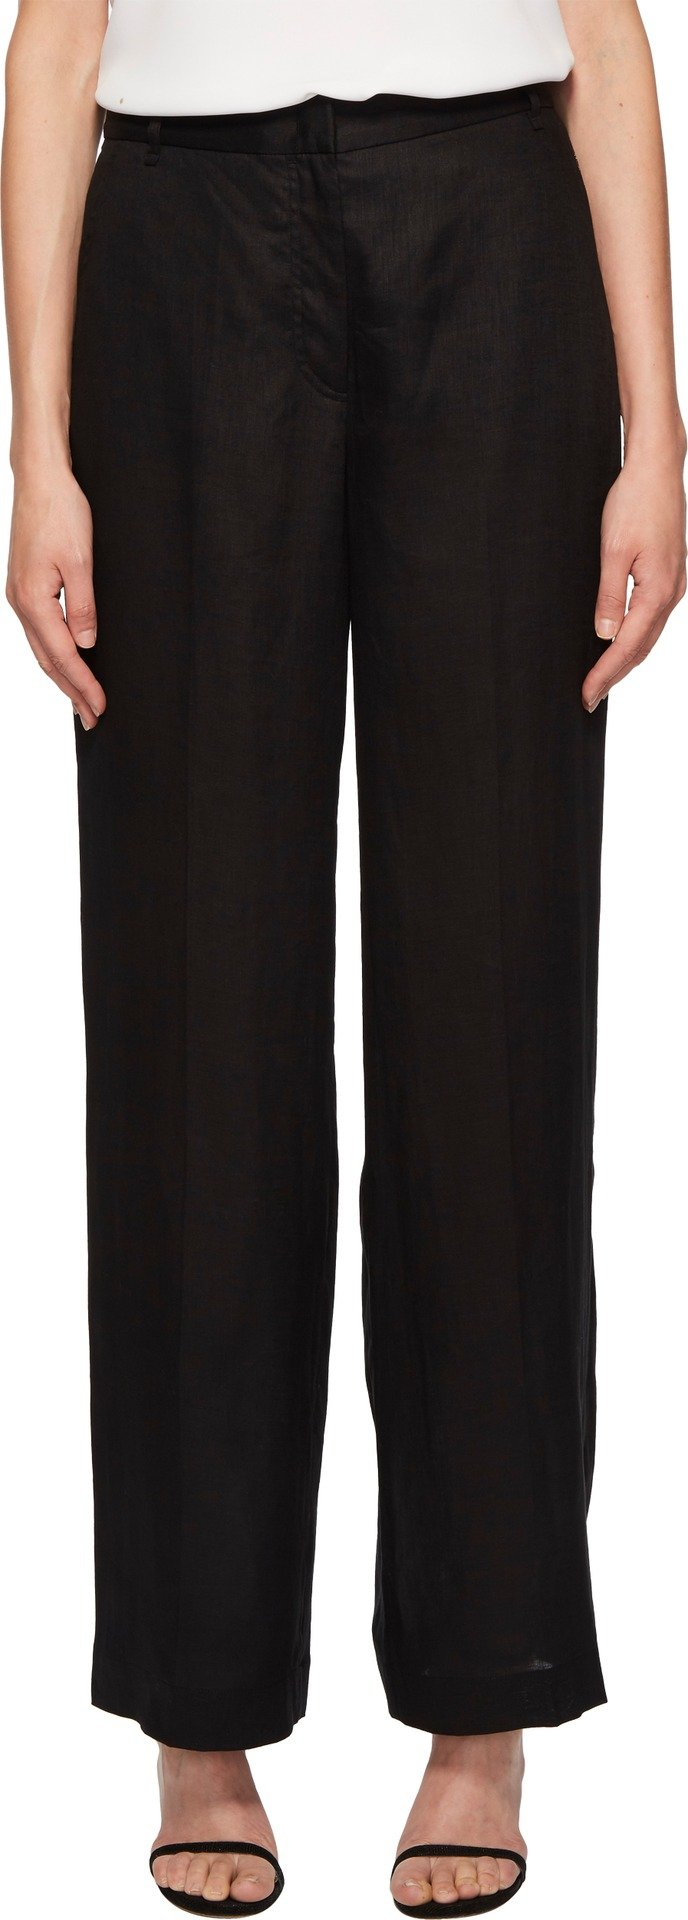 Escada Sport Women's Tobert Sheer Pants Black 44